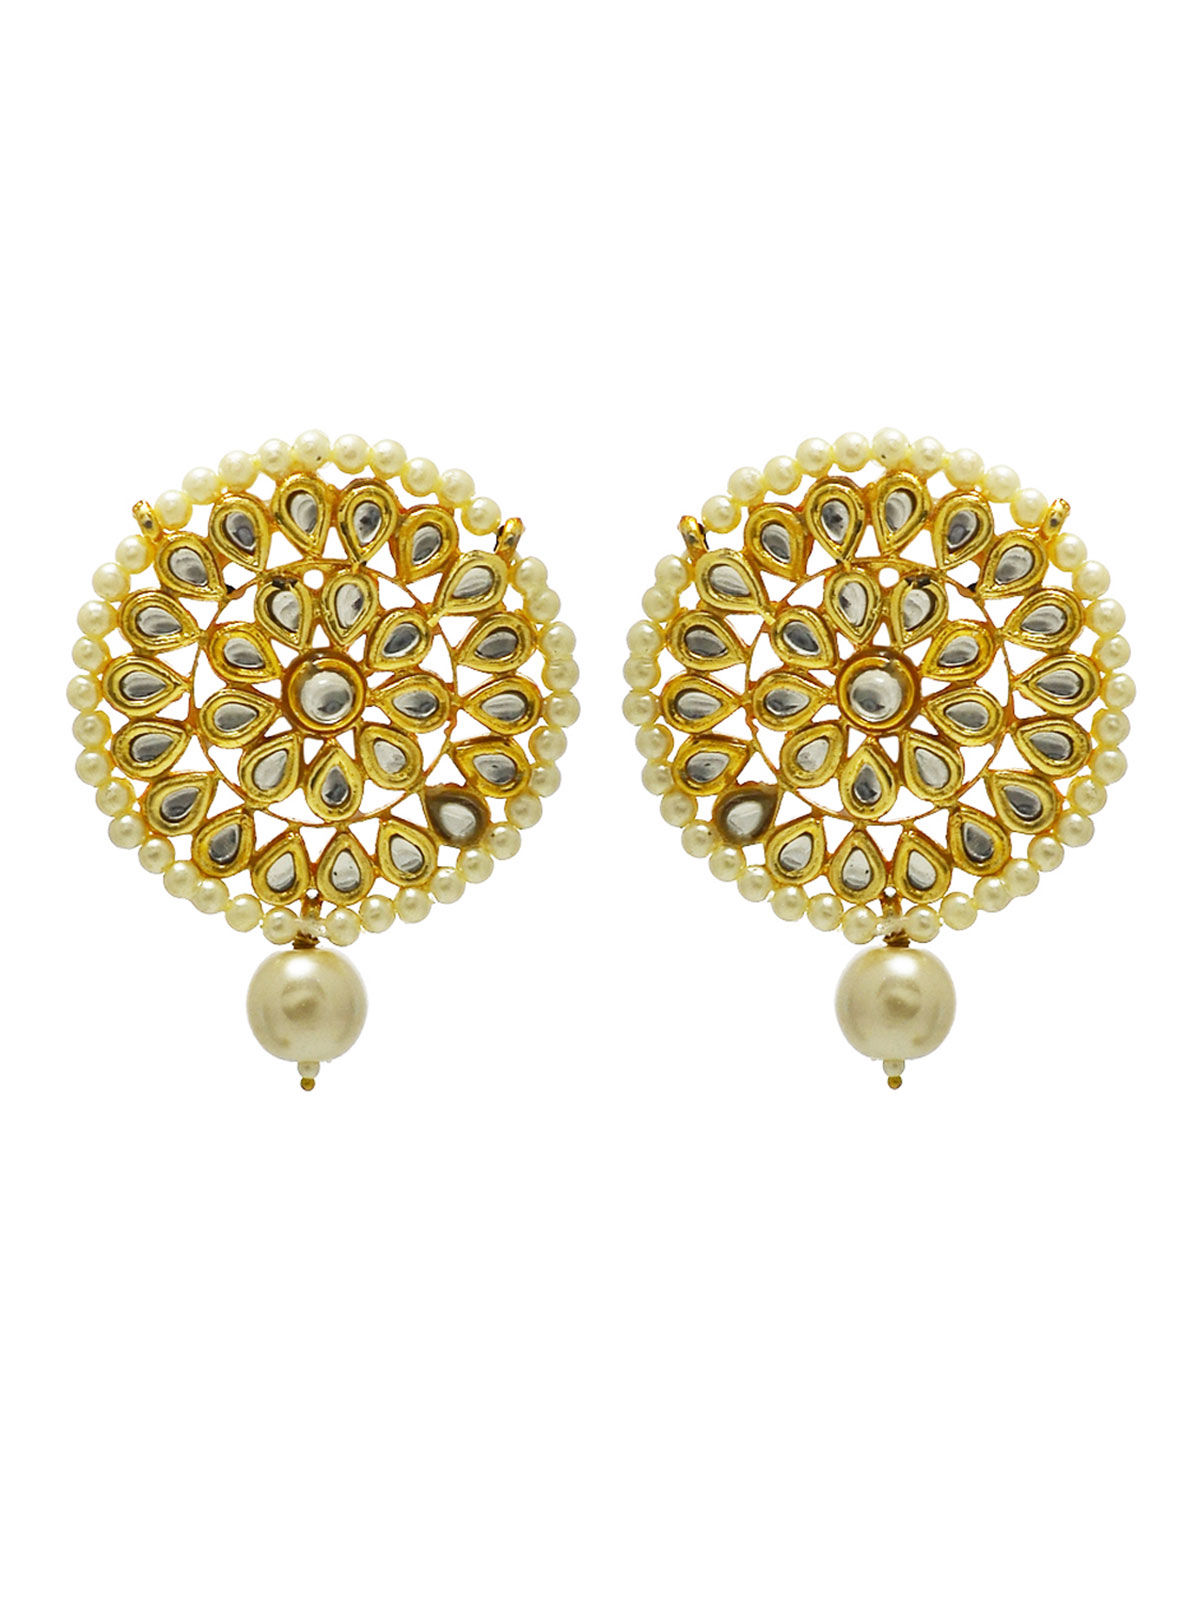 Kundan and Pearl Stud earrings